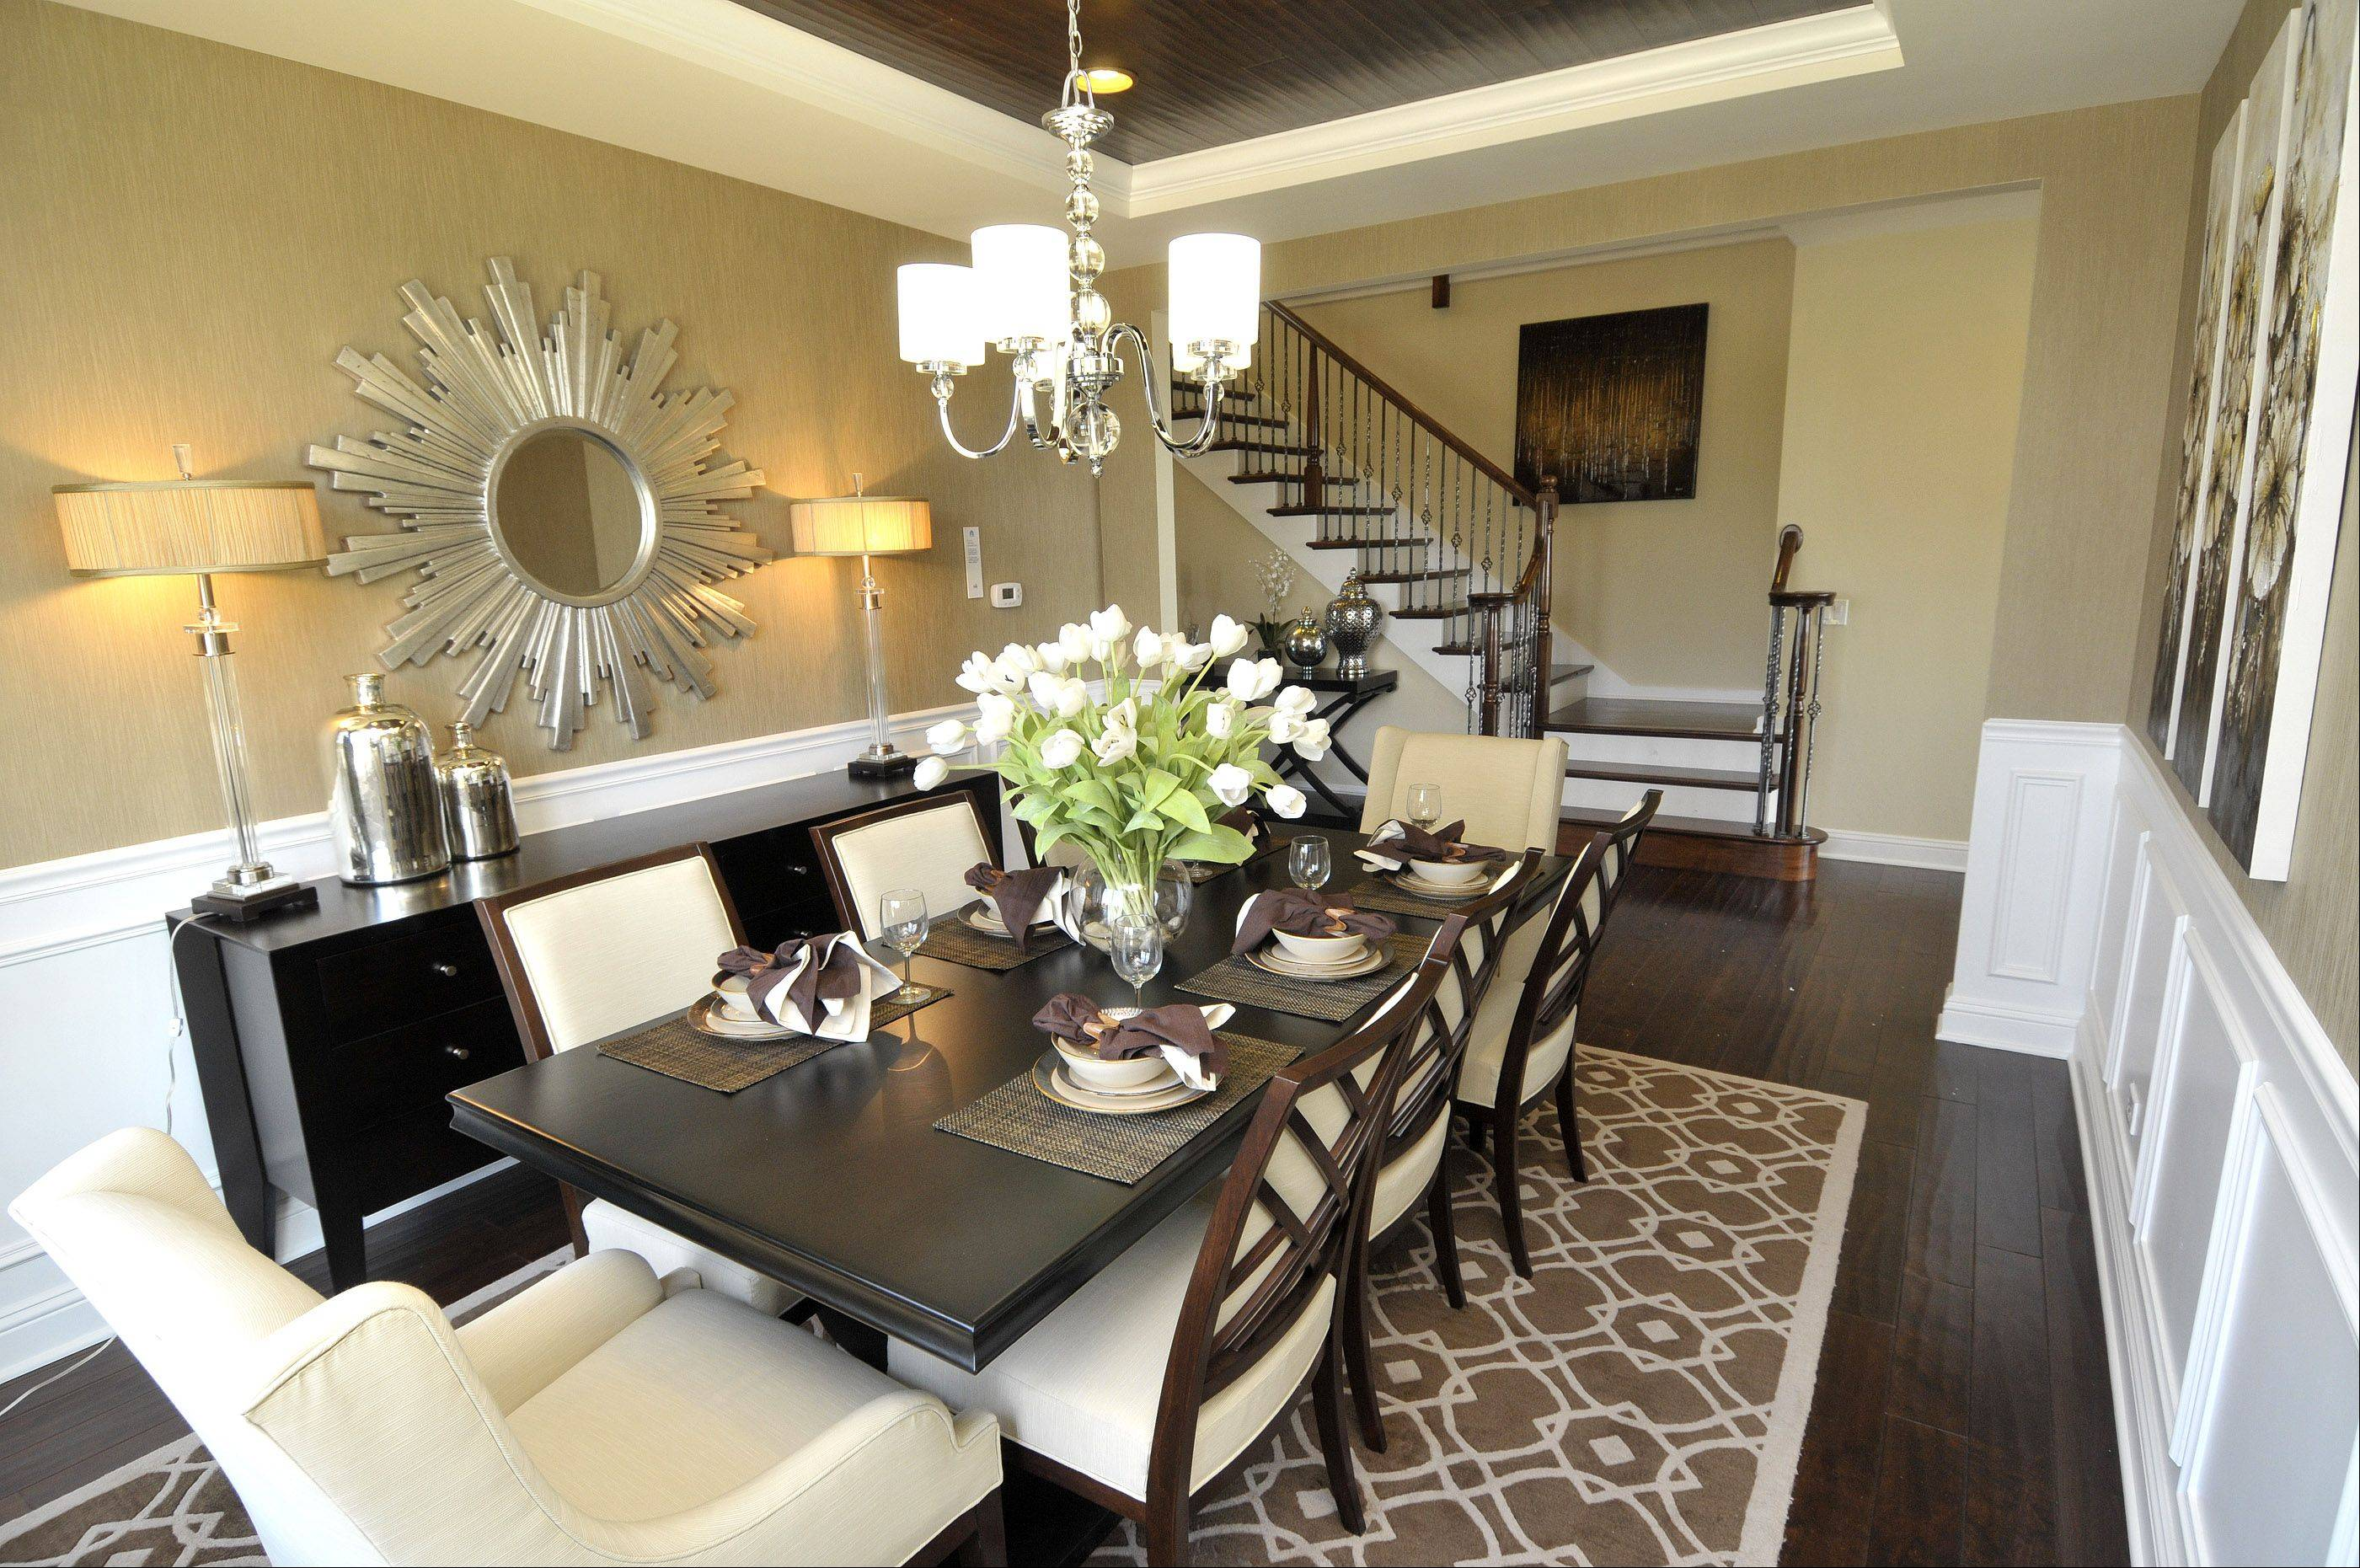 A neutral palette of white, creams and browns with silver accents creates a calm ambience in the Naples model at the Savoy Club community in Burr Ridge.